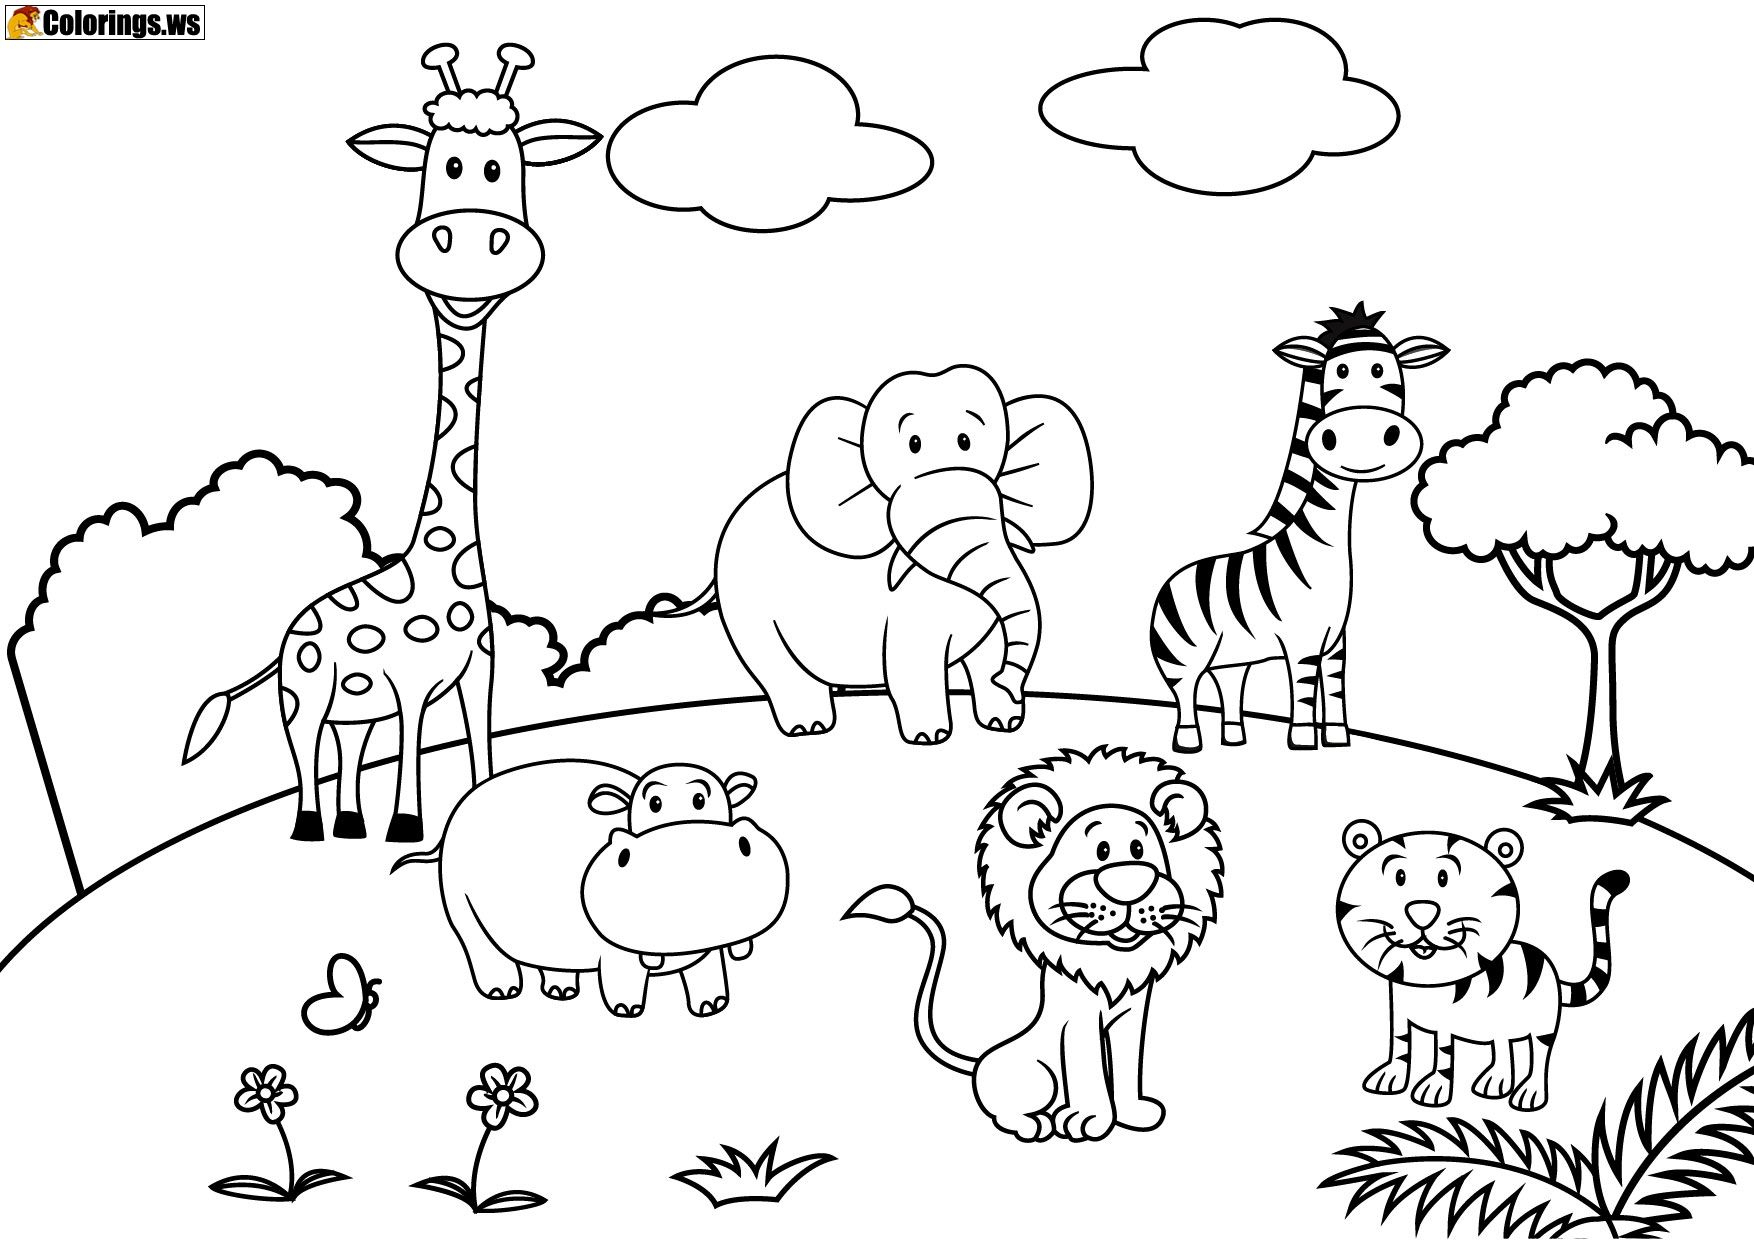 Playground 10 | Playground Coloring Pages | Free Printable | Free Printable Playground Coloring Worksheets